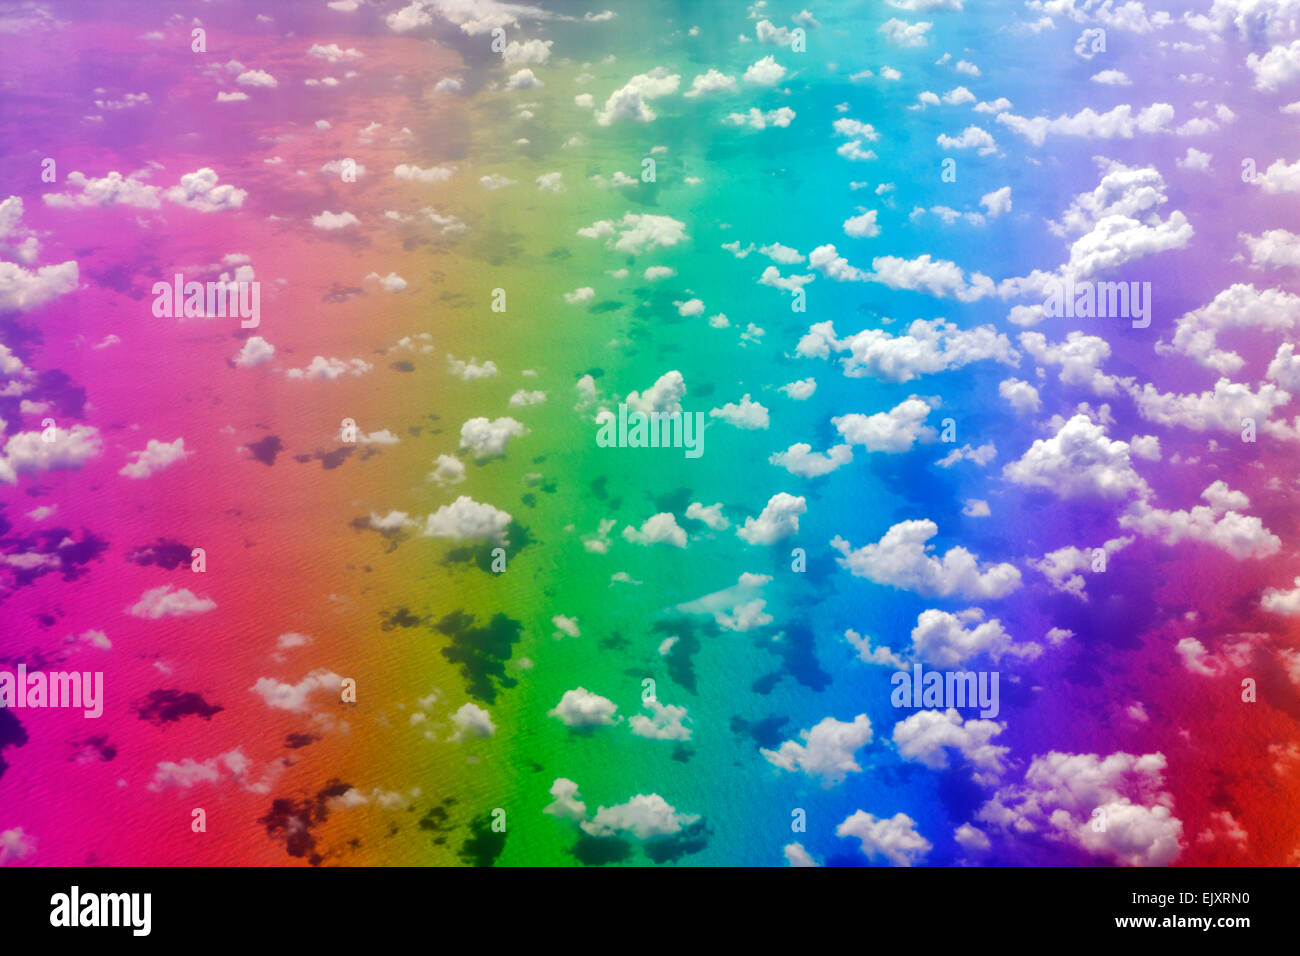 Rainbow colors over the ocean surface with clouds above Stock Photo